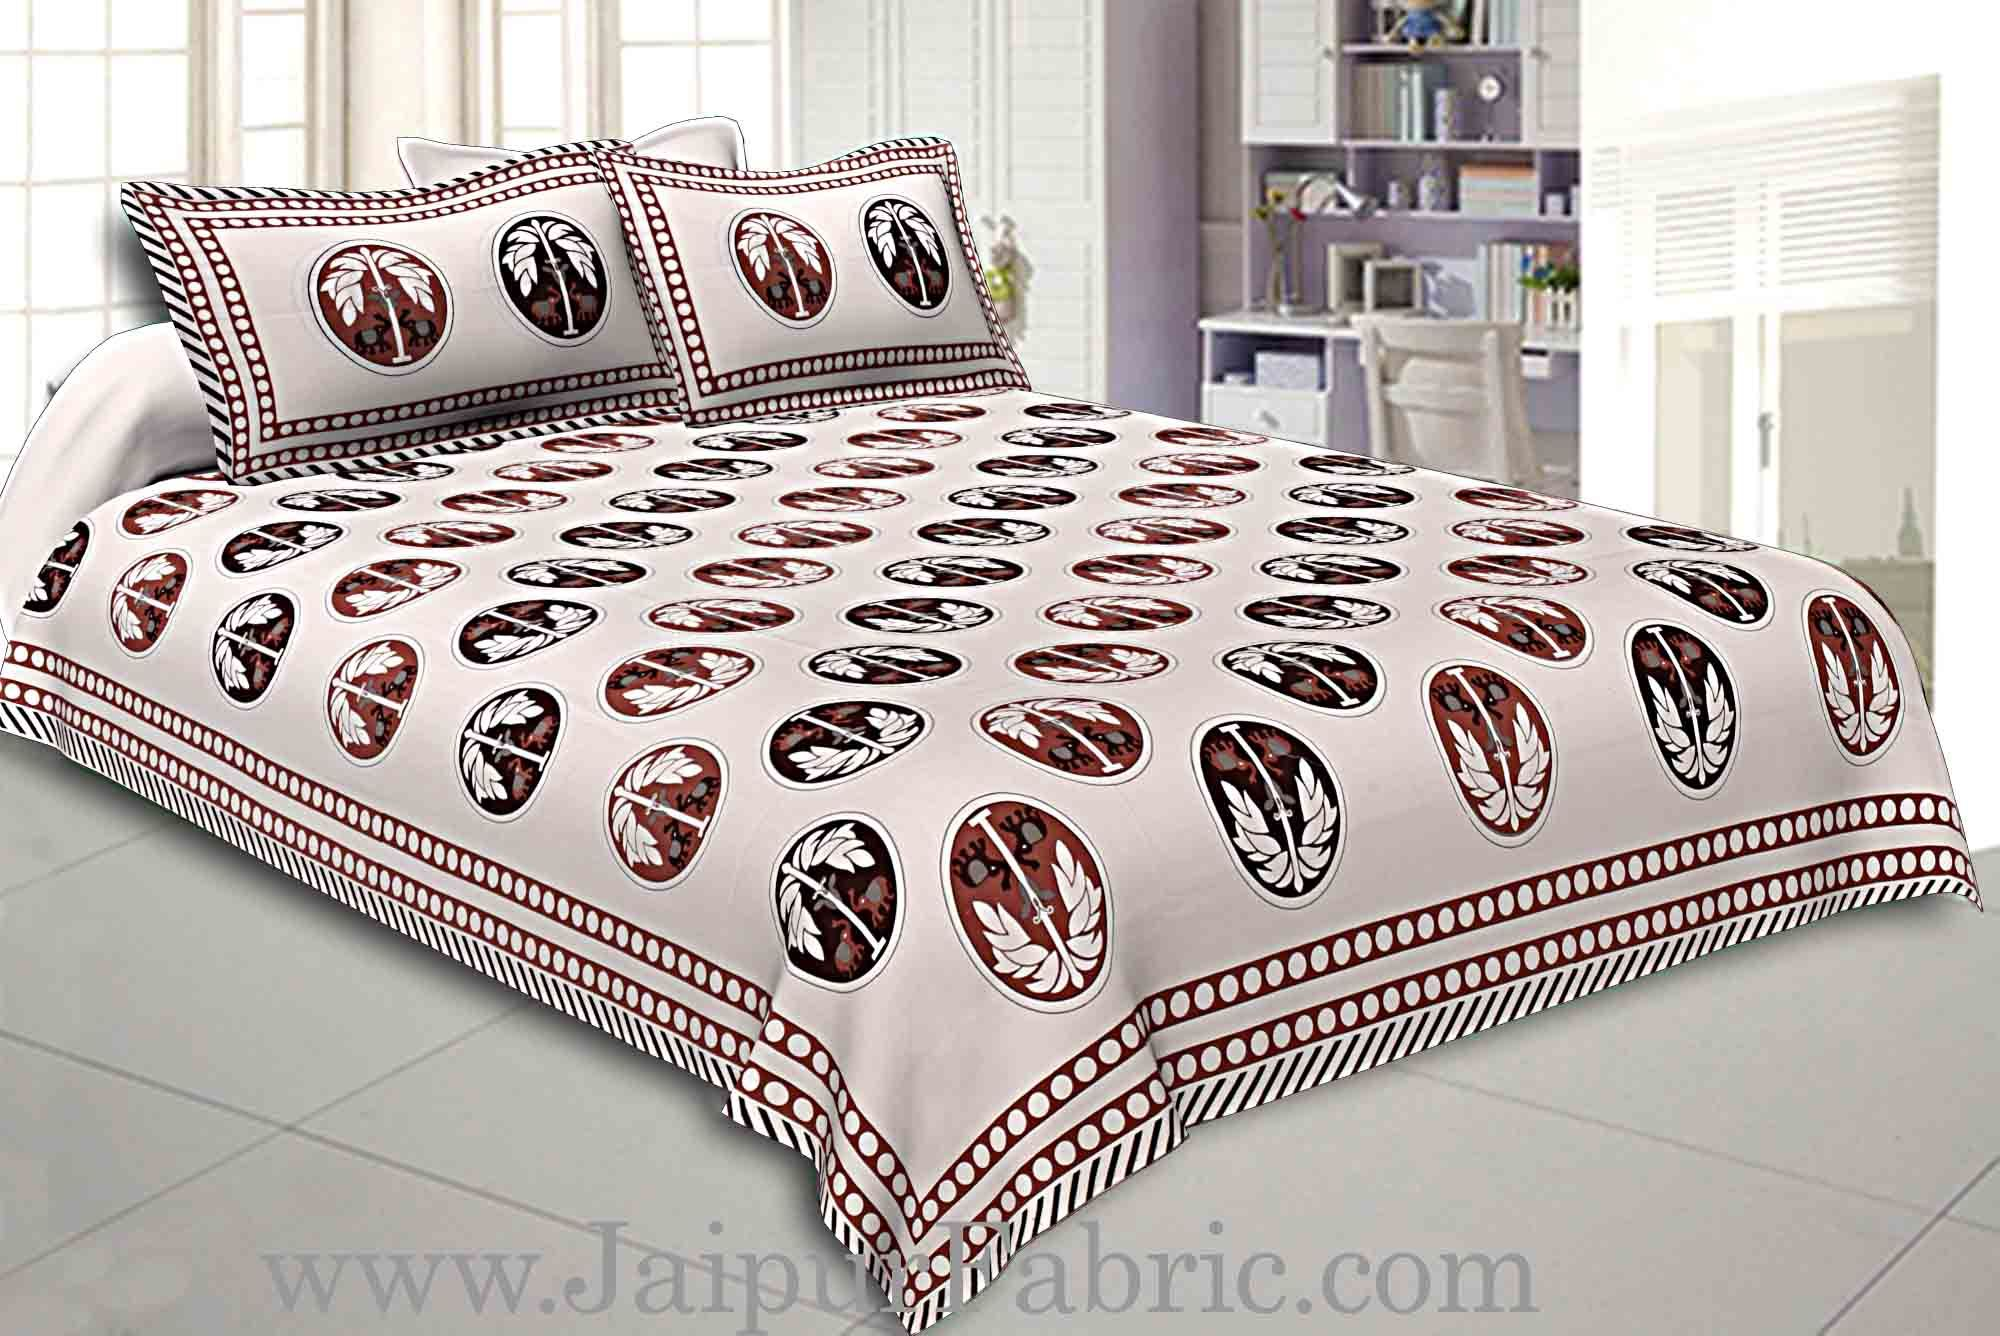 Double Bedsheet Grey  Border  Fine Cotton  Dark Tree Print